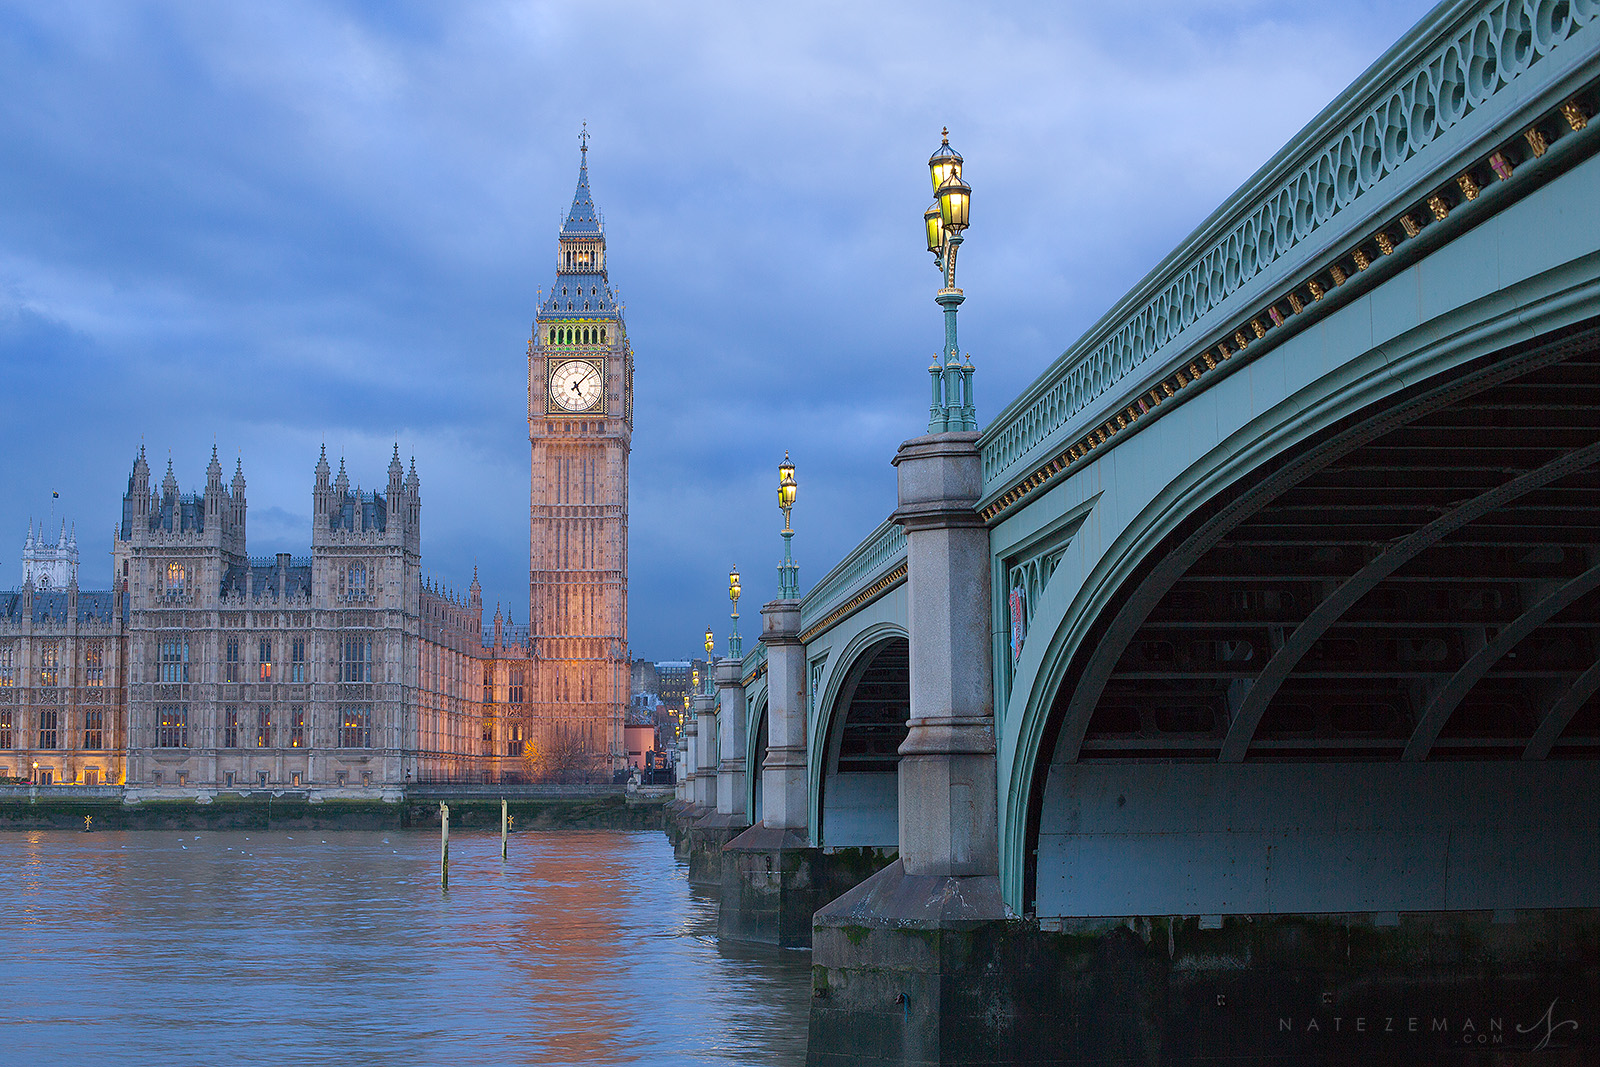 big ben, westminster, westminster bridge, houses of parliament, elizabeth tower, london, england, uk, photo